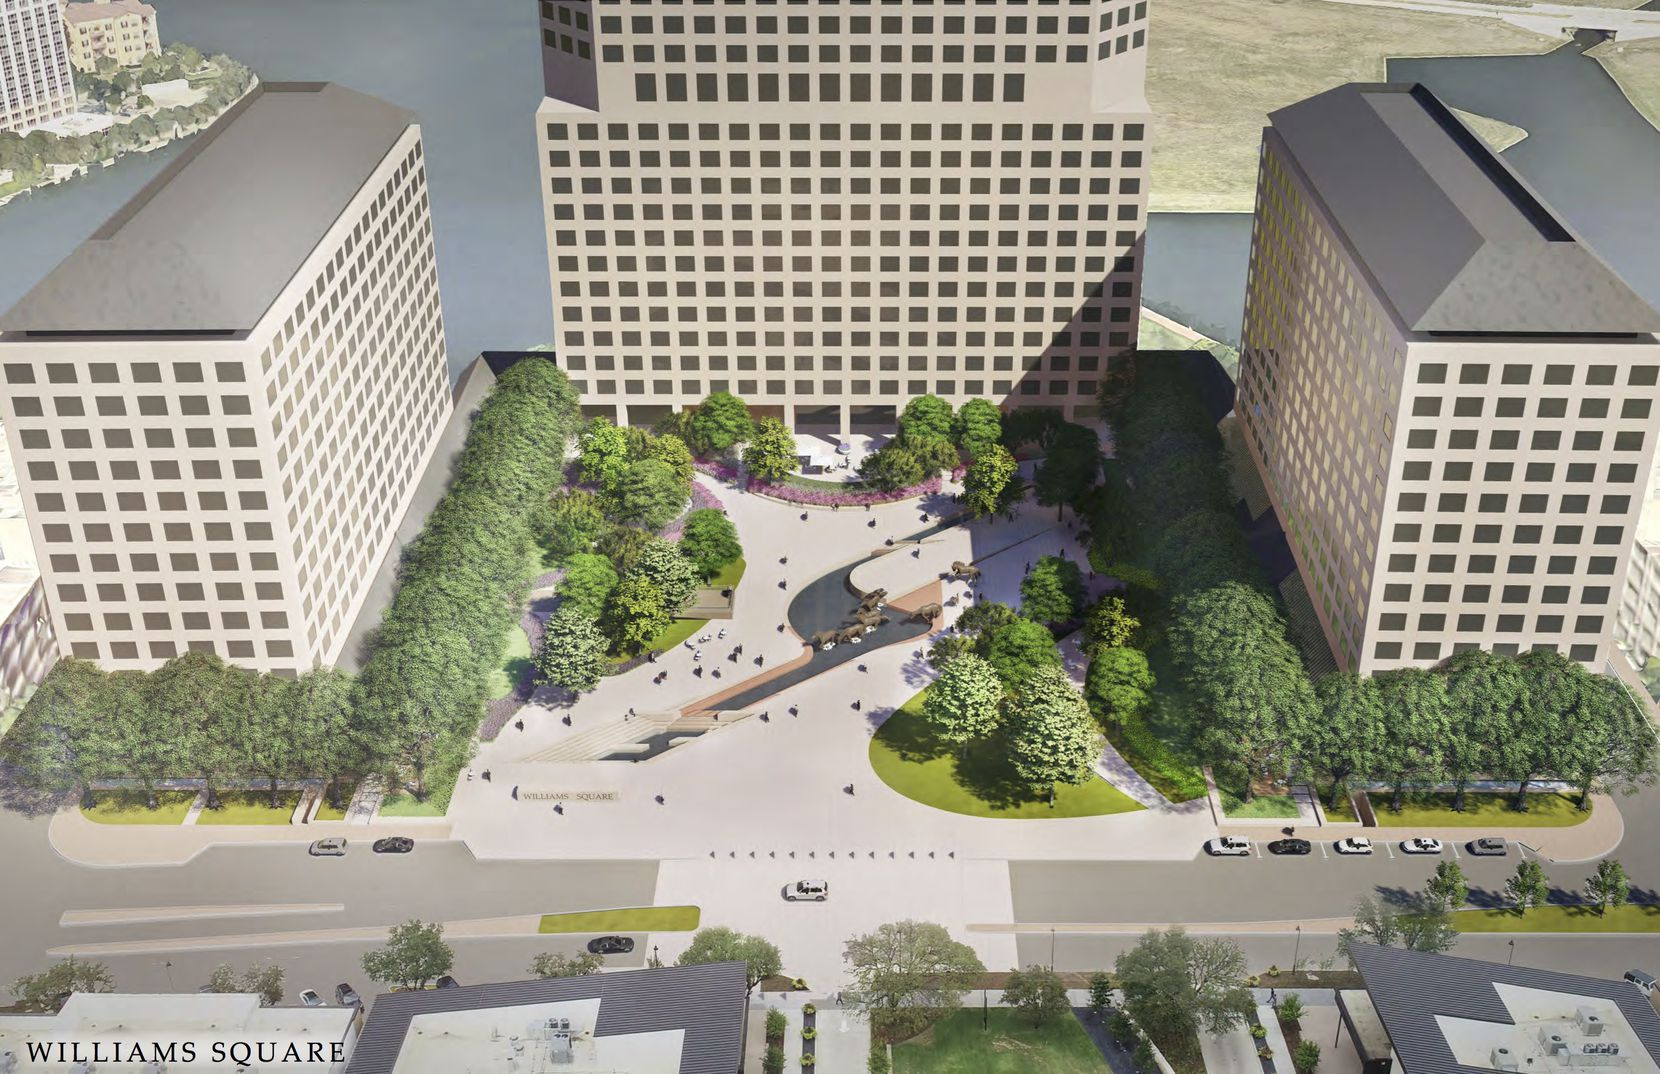 A proposed makeover of the Williams Square plaza would add more trees, grass, plantings and lounge areas for visitors.